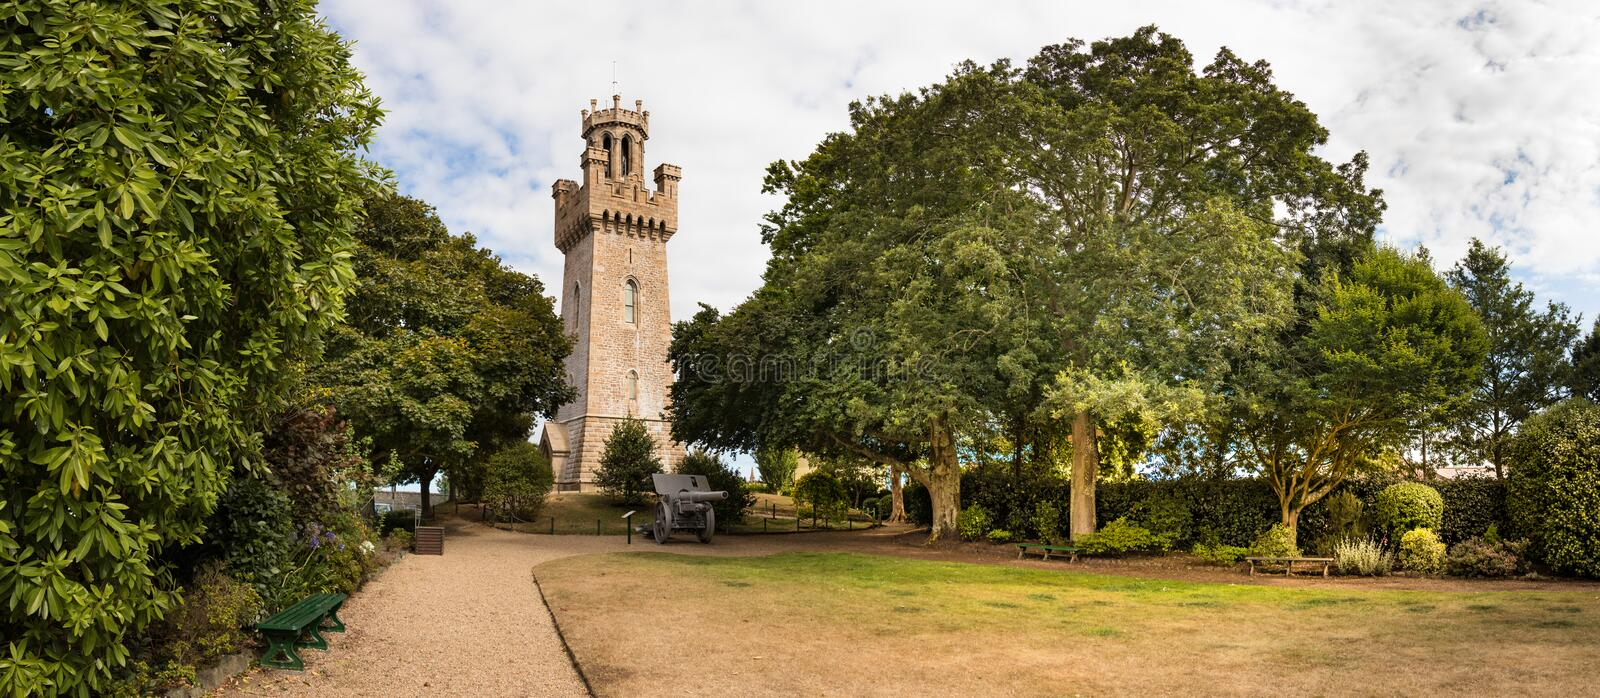 Panoramic view of the Victoria Tower placed next to the Town Arsenal at St Peter Port, Guernsey royalty free stock photos